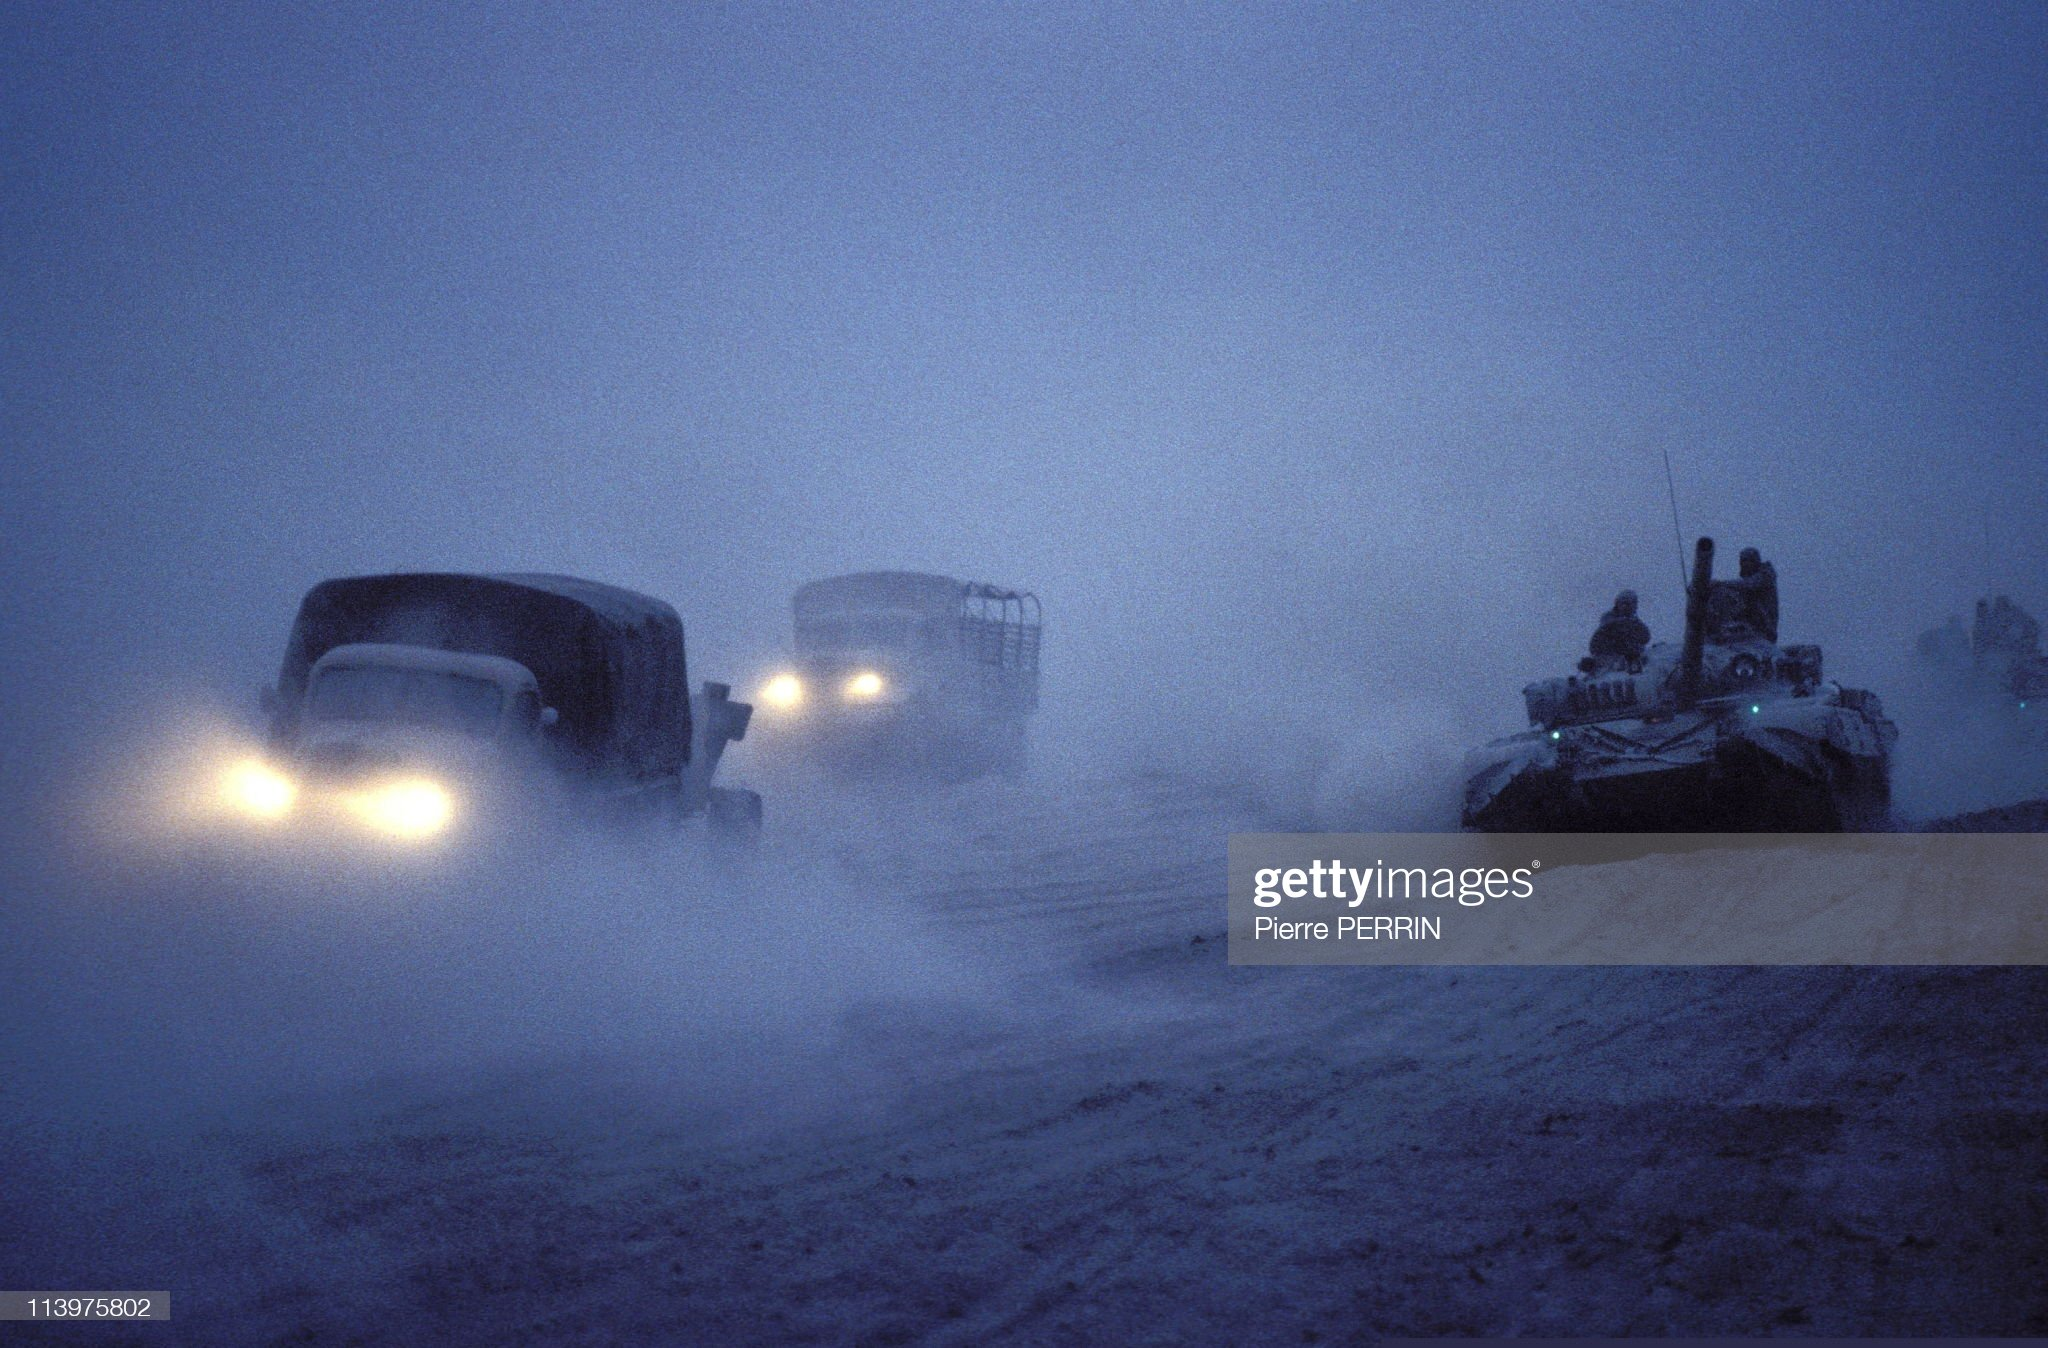 https://media.gettyimages.com/photos/iraqiran-war-war-of-the-marsch-in-iraq-on-march-20-1985-picture-id113975802?s=2048x2048